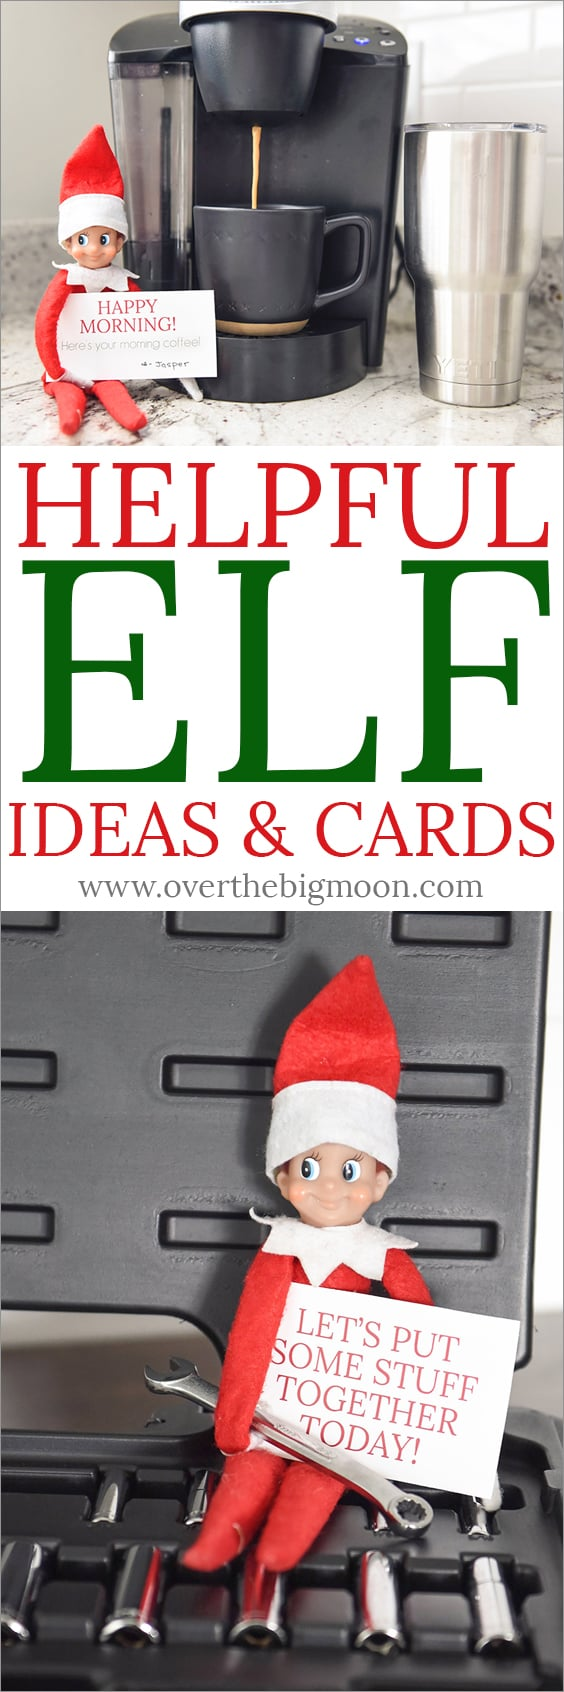 Come see fun ideas for the Helpful Elf and download some printable cards! From overthebigmoon.com!